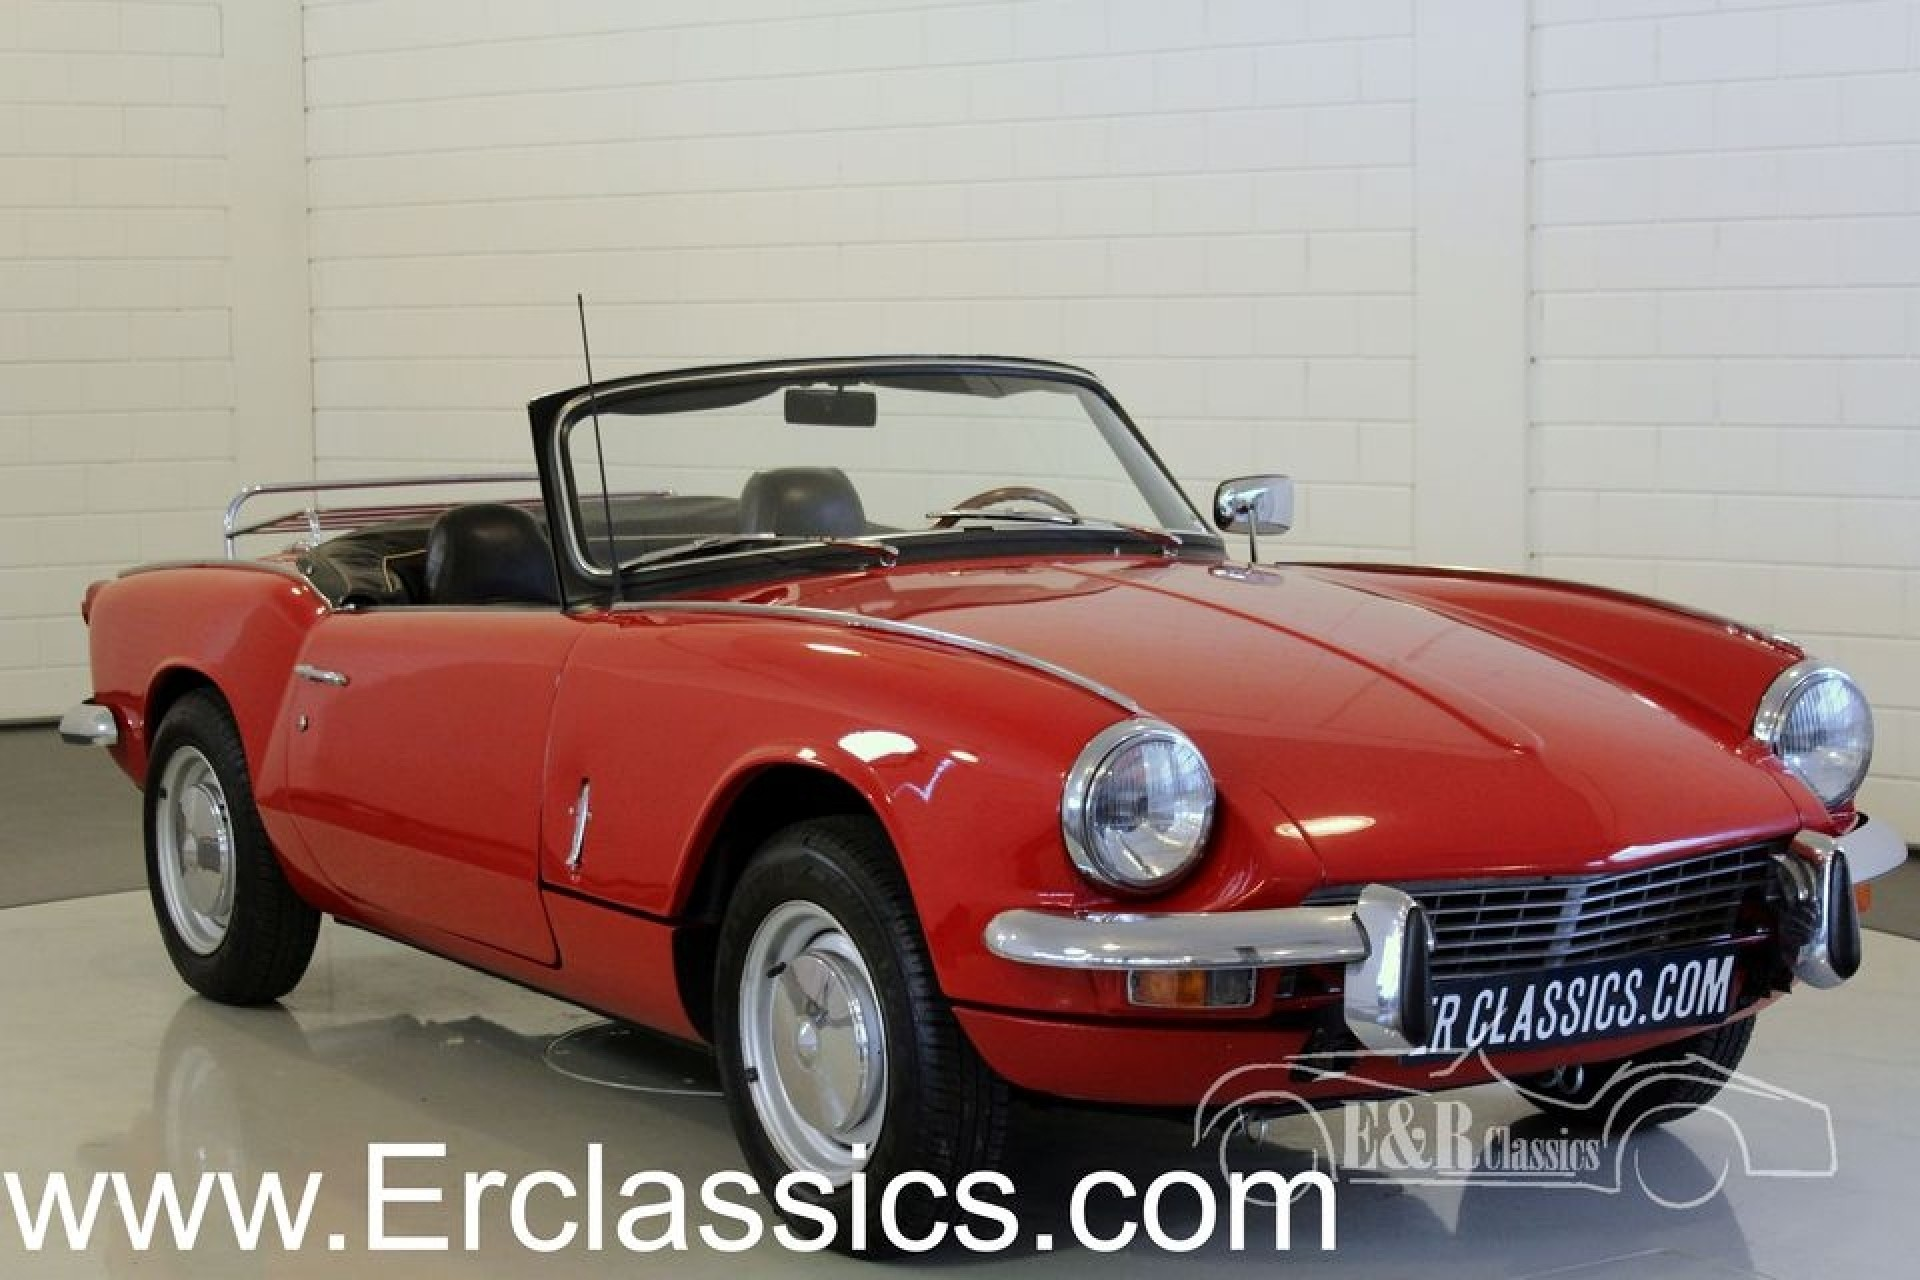 Triumph Spitfire MK3 1970 for sale at ERclassics